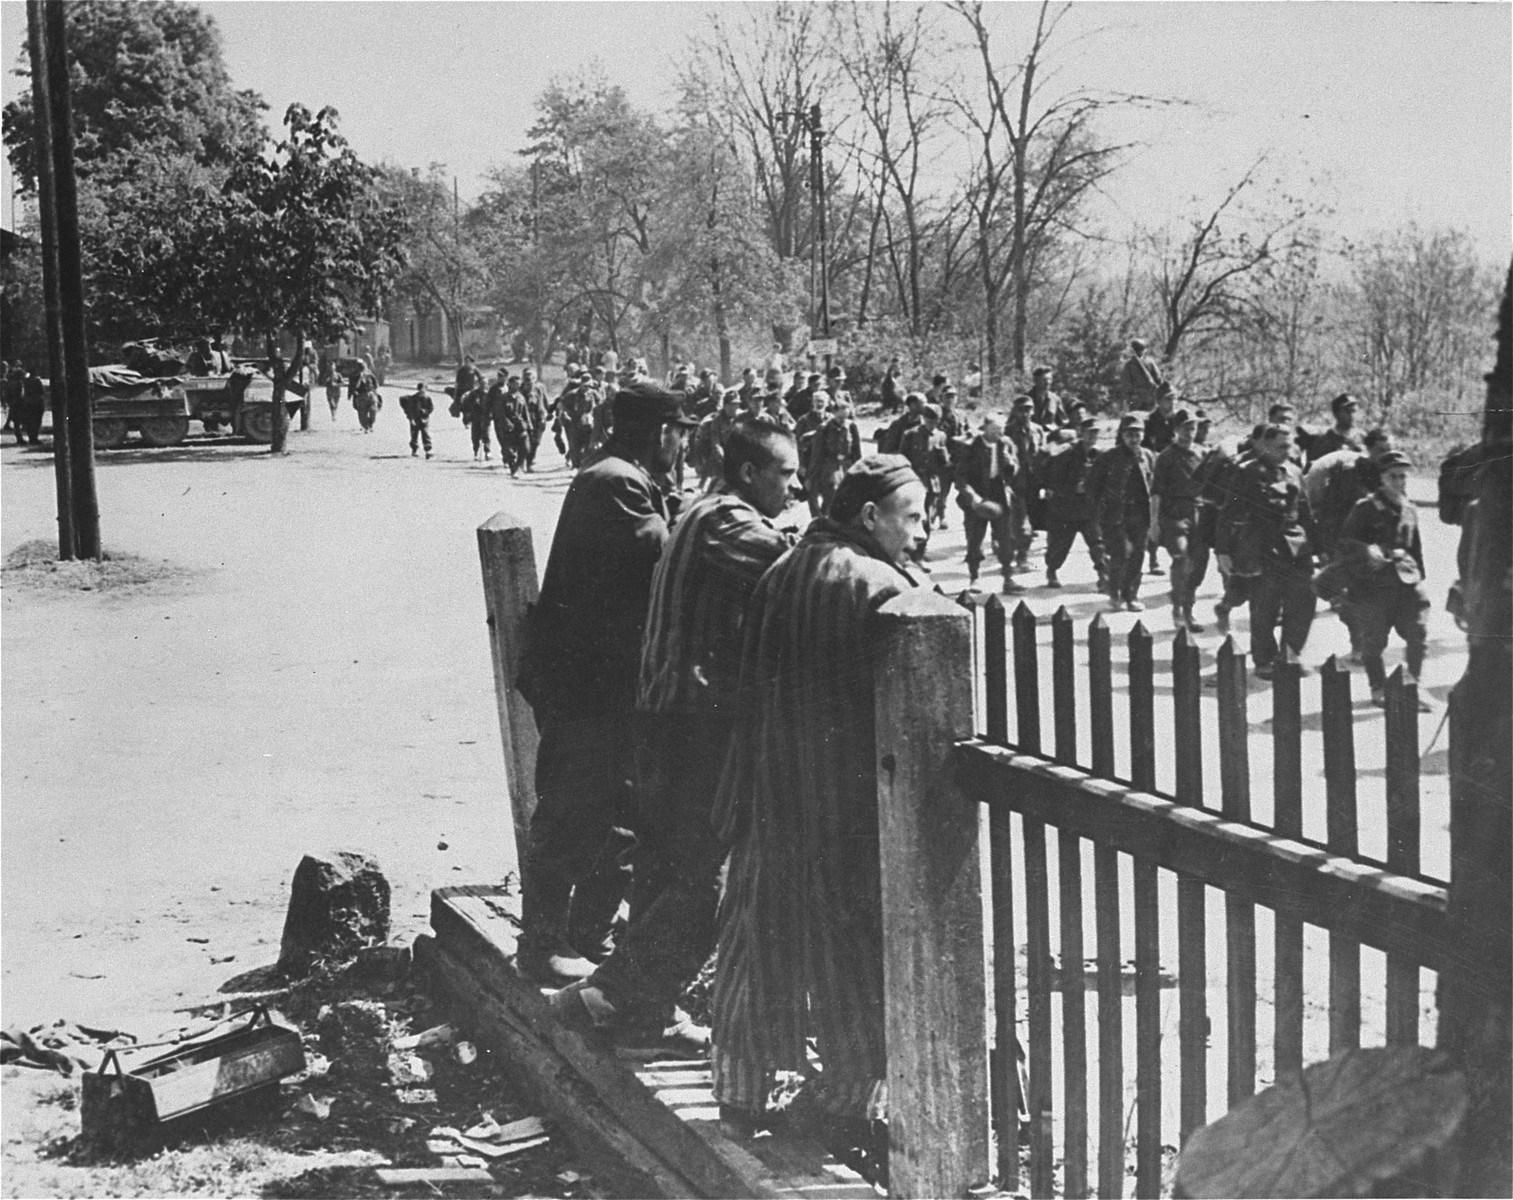 Three survivors from Gusen watch a passing column of German troops who have surrendered to the U.S. Army.